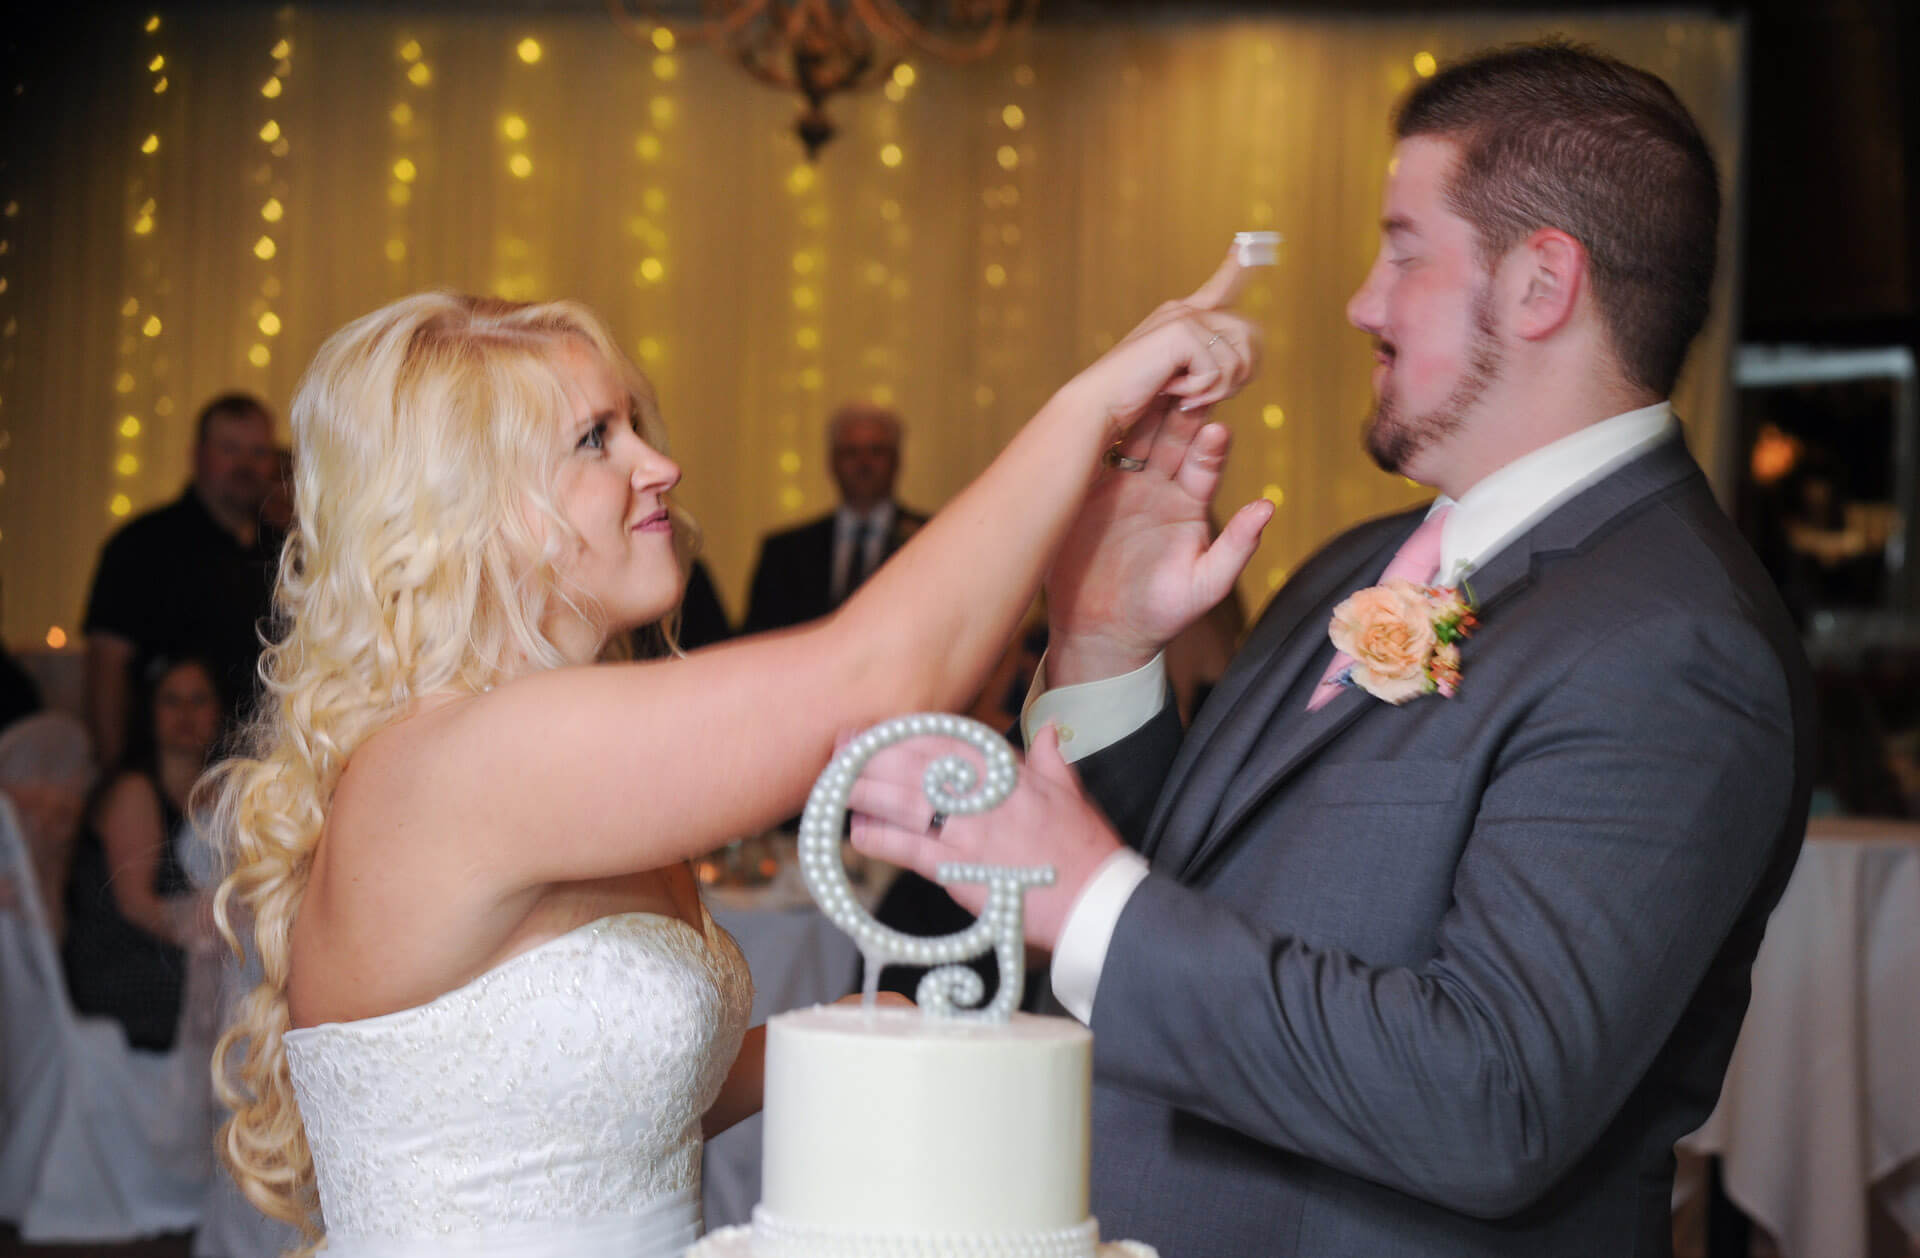 Candid wedding photography showing a bride about to smash cake in her groom's face at their metro Detroit wedding.